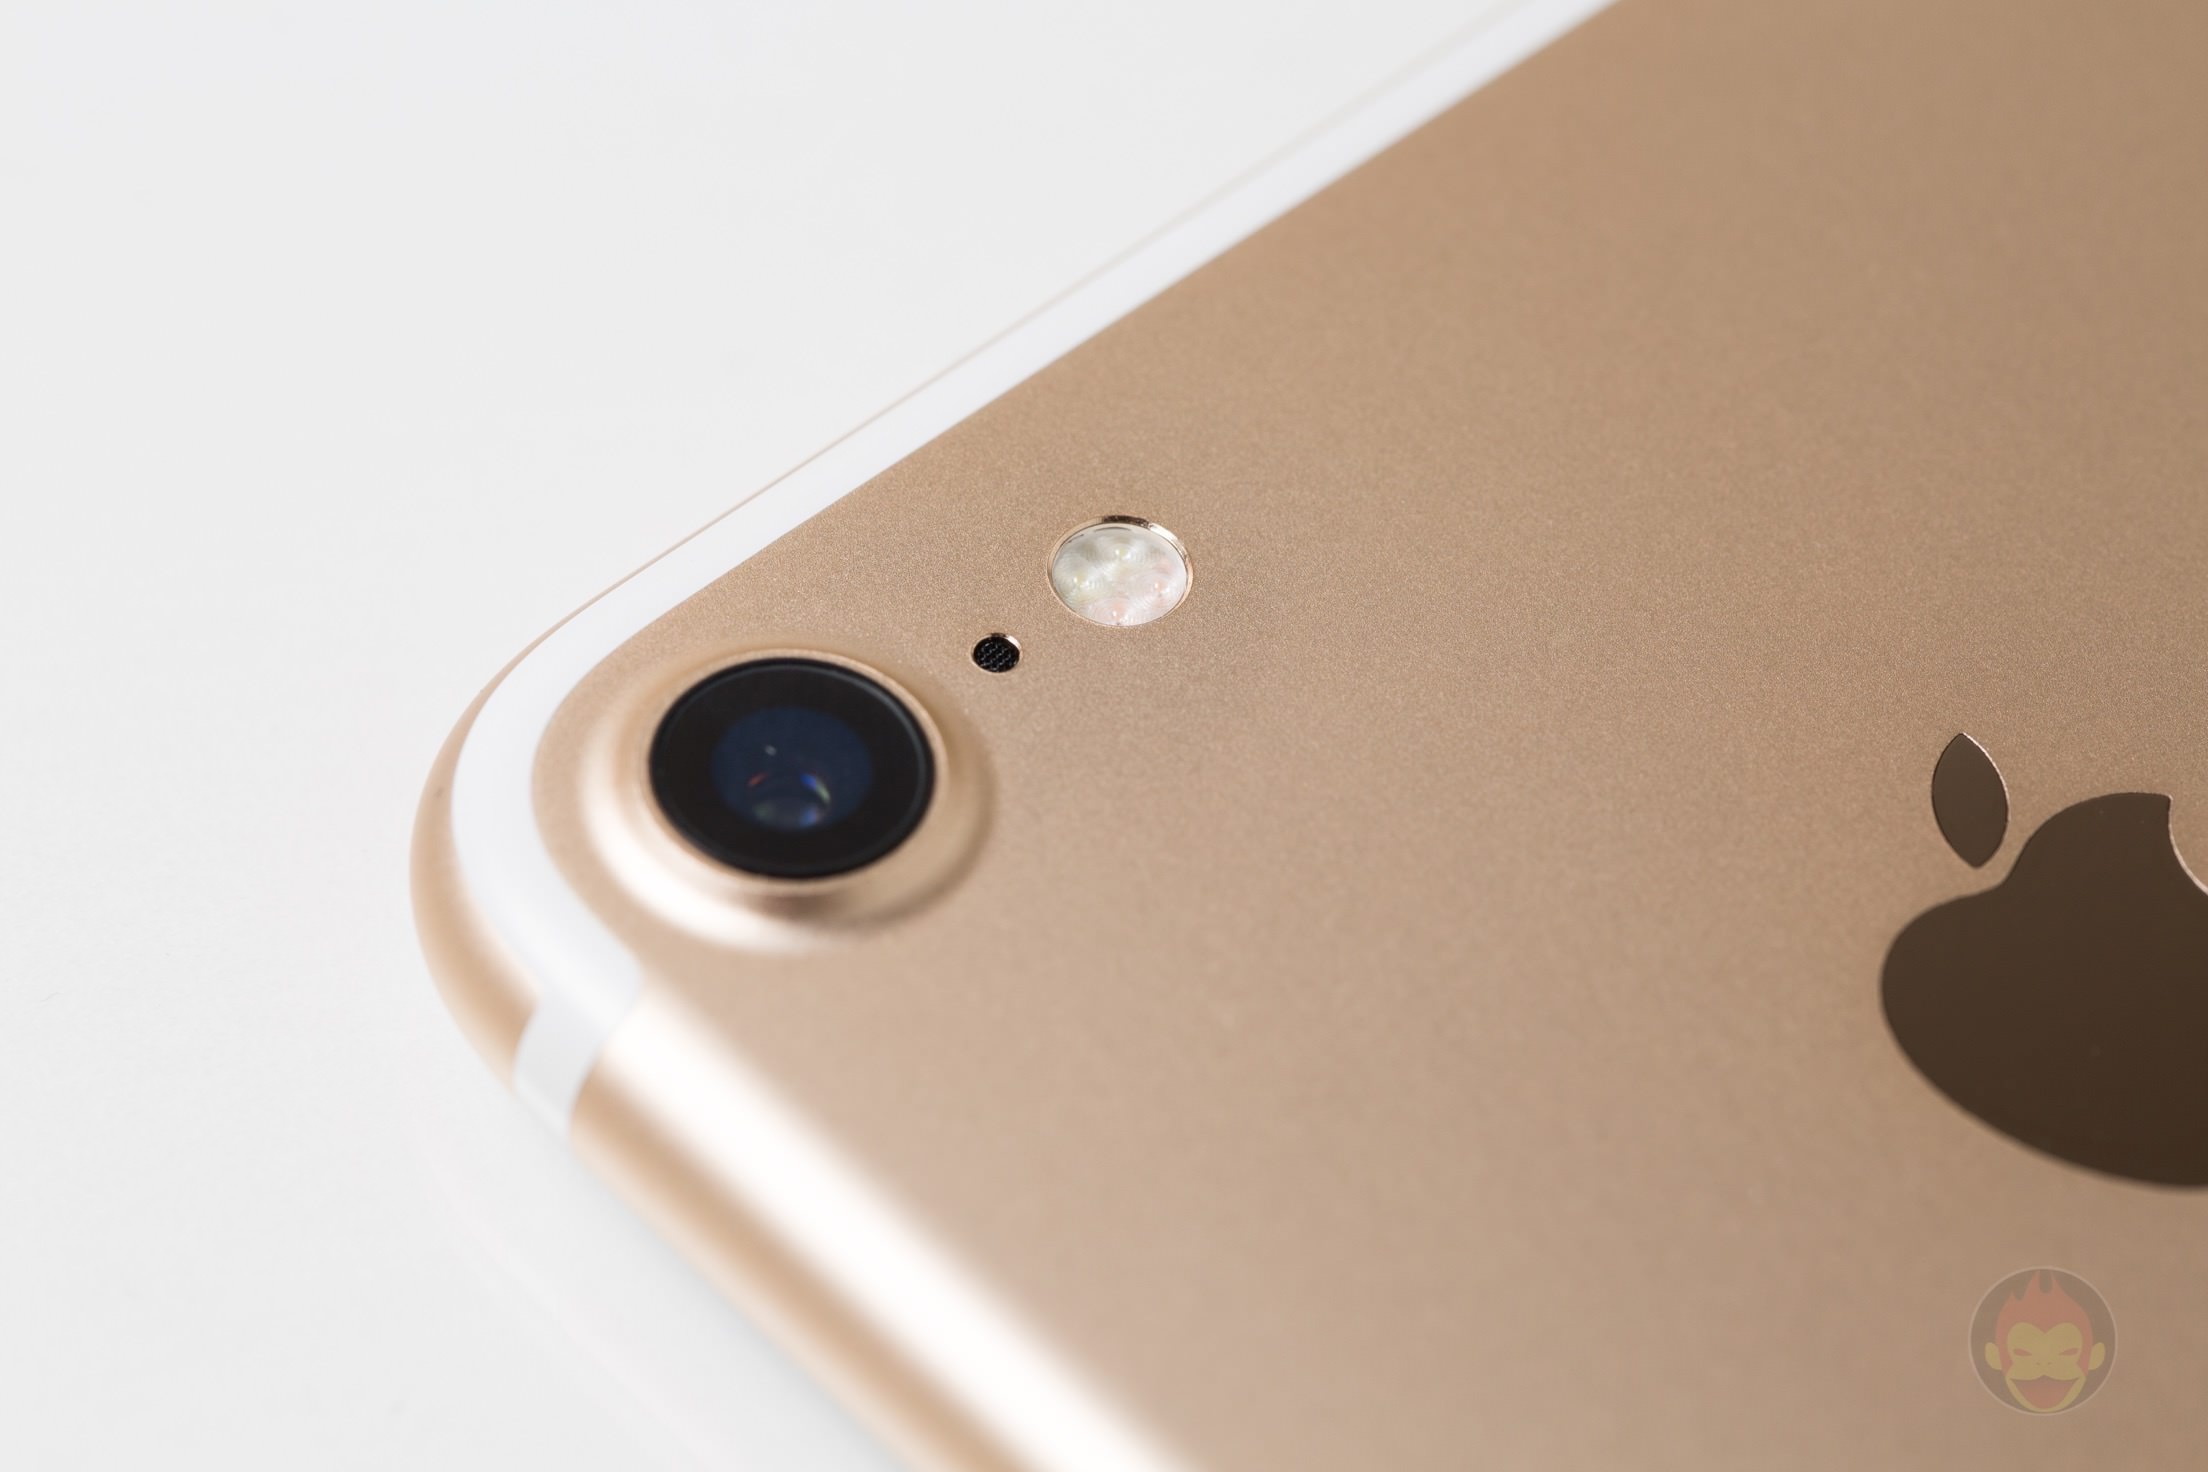 IPhone 7 Gold Model